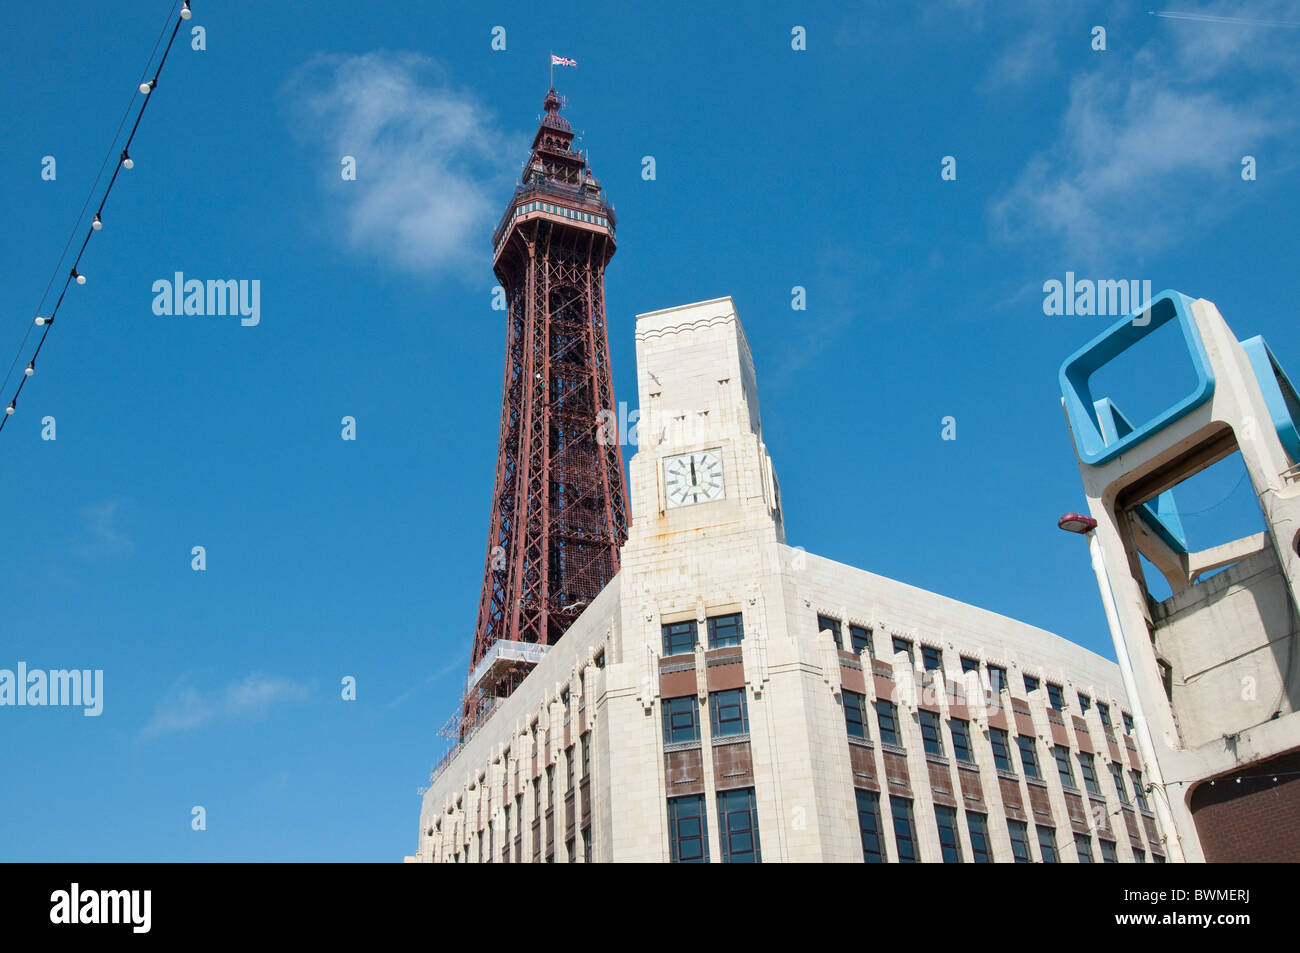 The Famous Tower Complex in Blackpool on the coast of Lancashire in Northern England - Stock Image